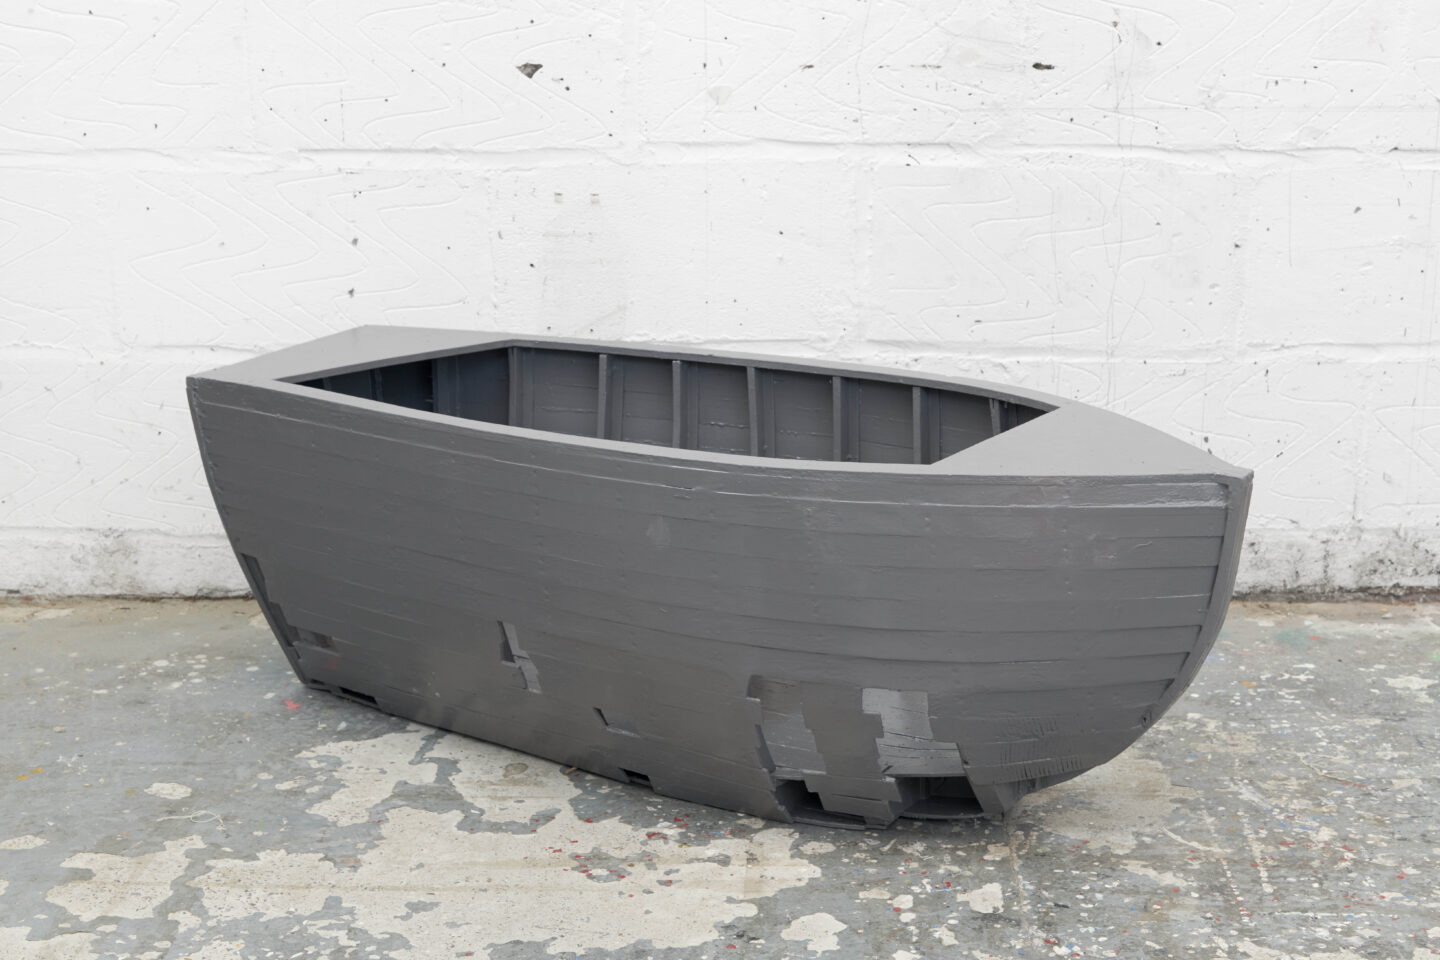 Exhibition View Fabian Peake Soloshow «A Swift at the Corner; view on Holed Boat, 2019» at Kunstmuseum Luzern, Lucerne, 2019 / Courtesy: the artist